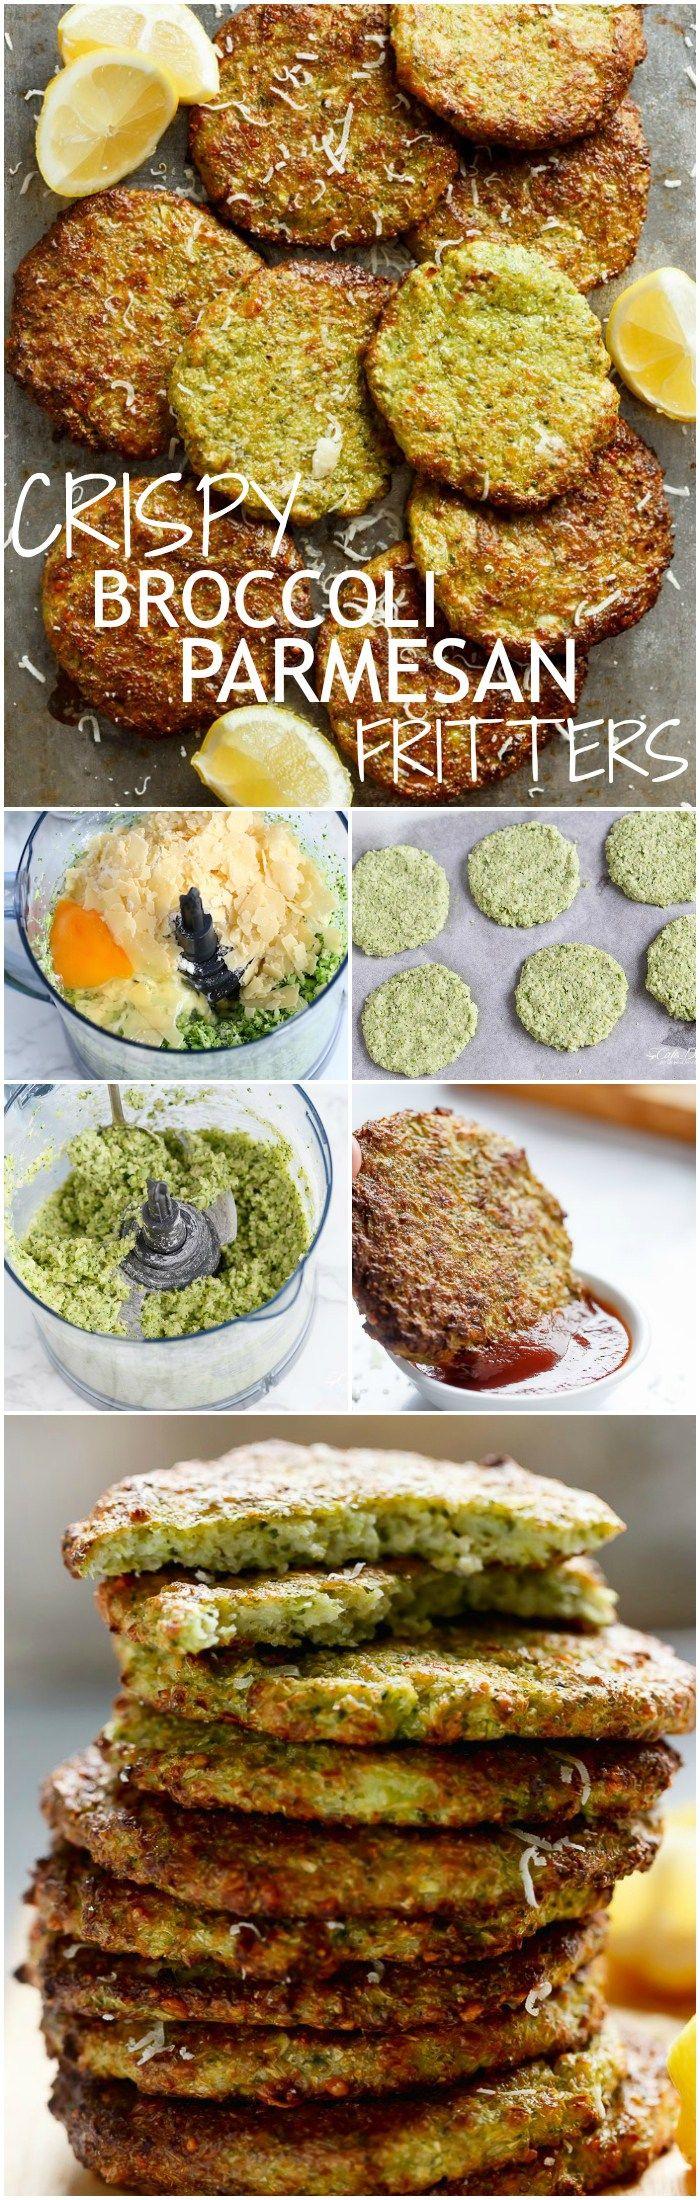 Crispy Broccoli Parmesan Fritters -- baked instead of fried -- is a great way to deliciously stash veggies for both children and adults!   http://cafedelites.com